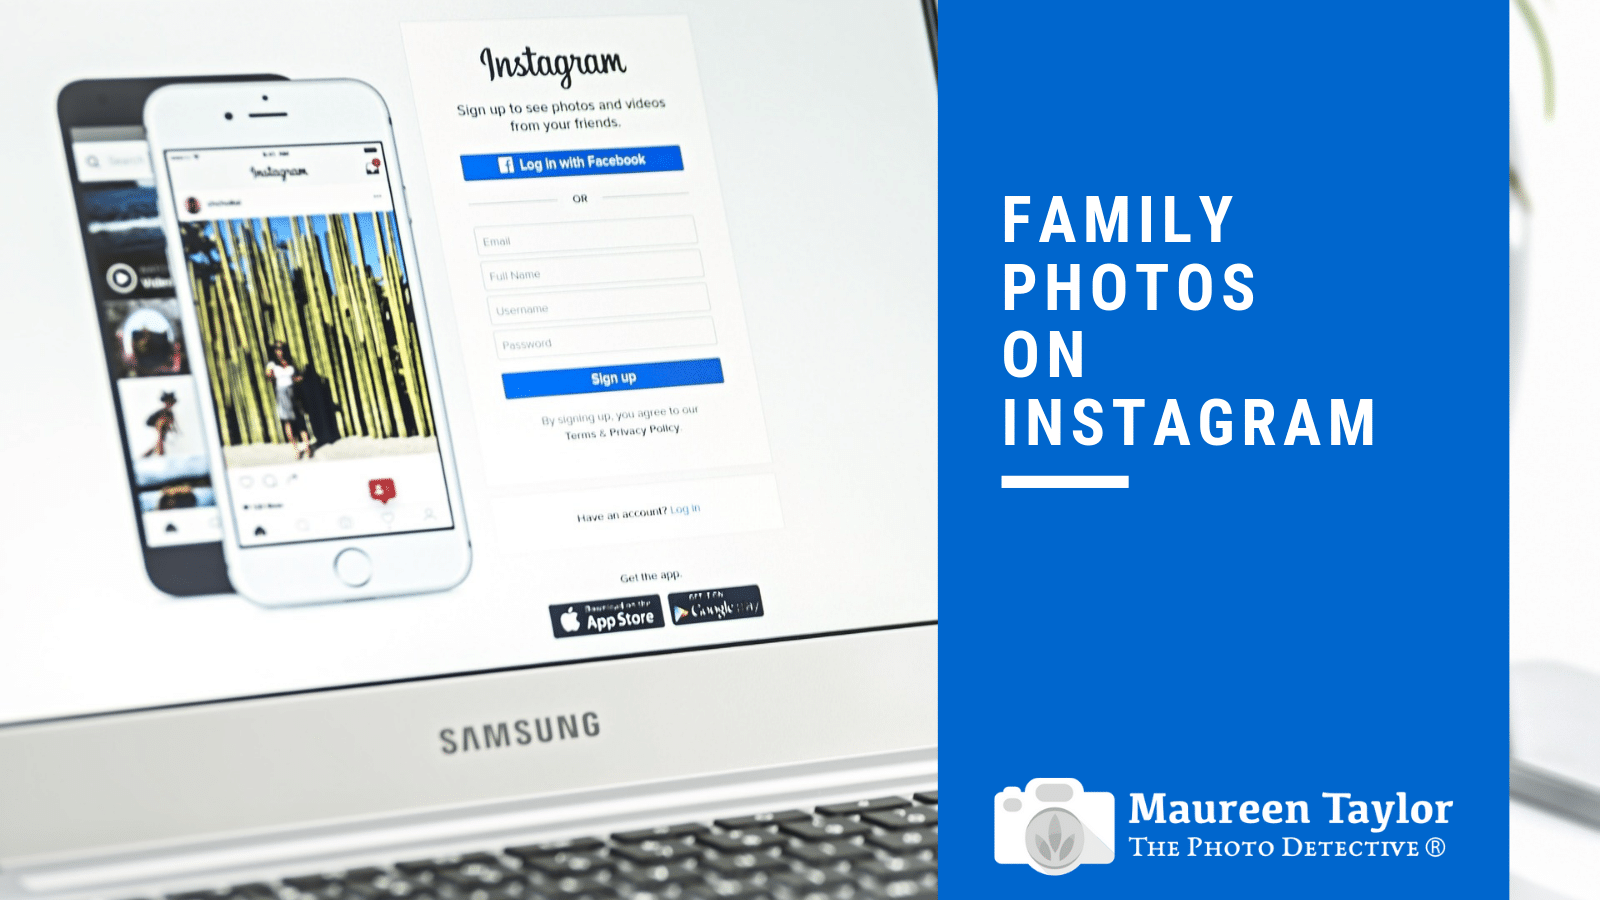 Family Photos on Instagram | The Photo Detective